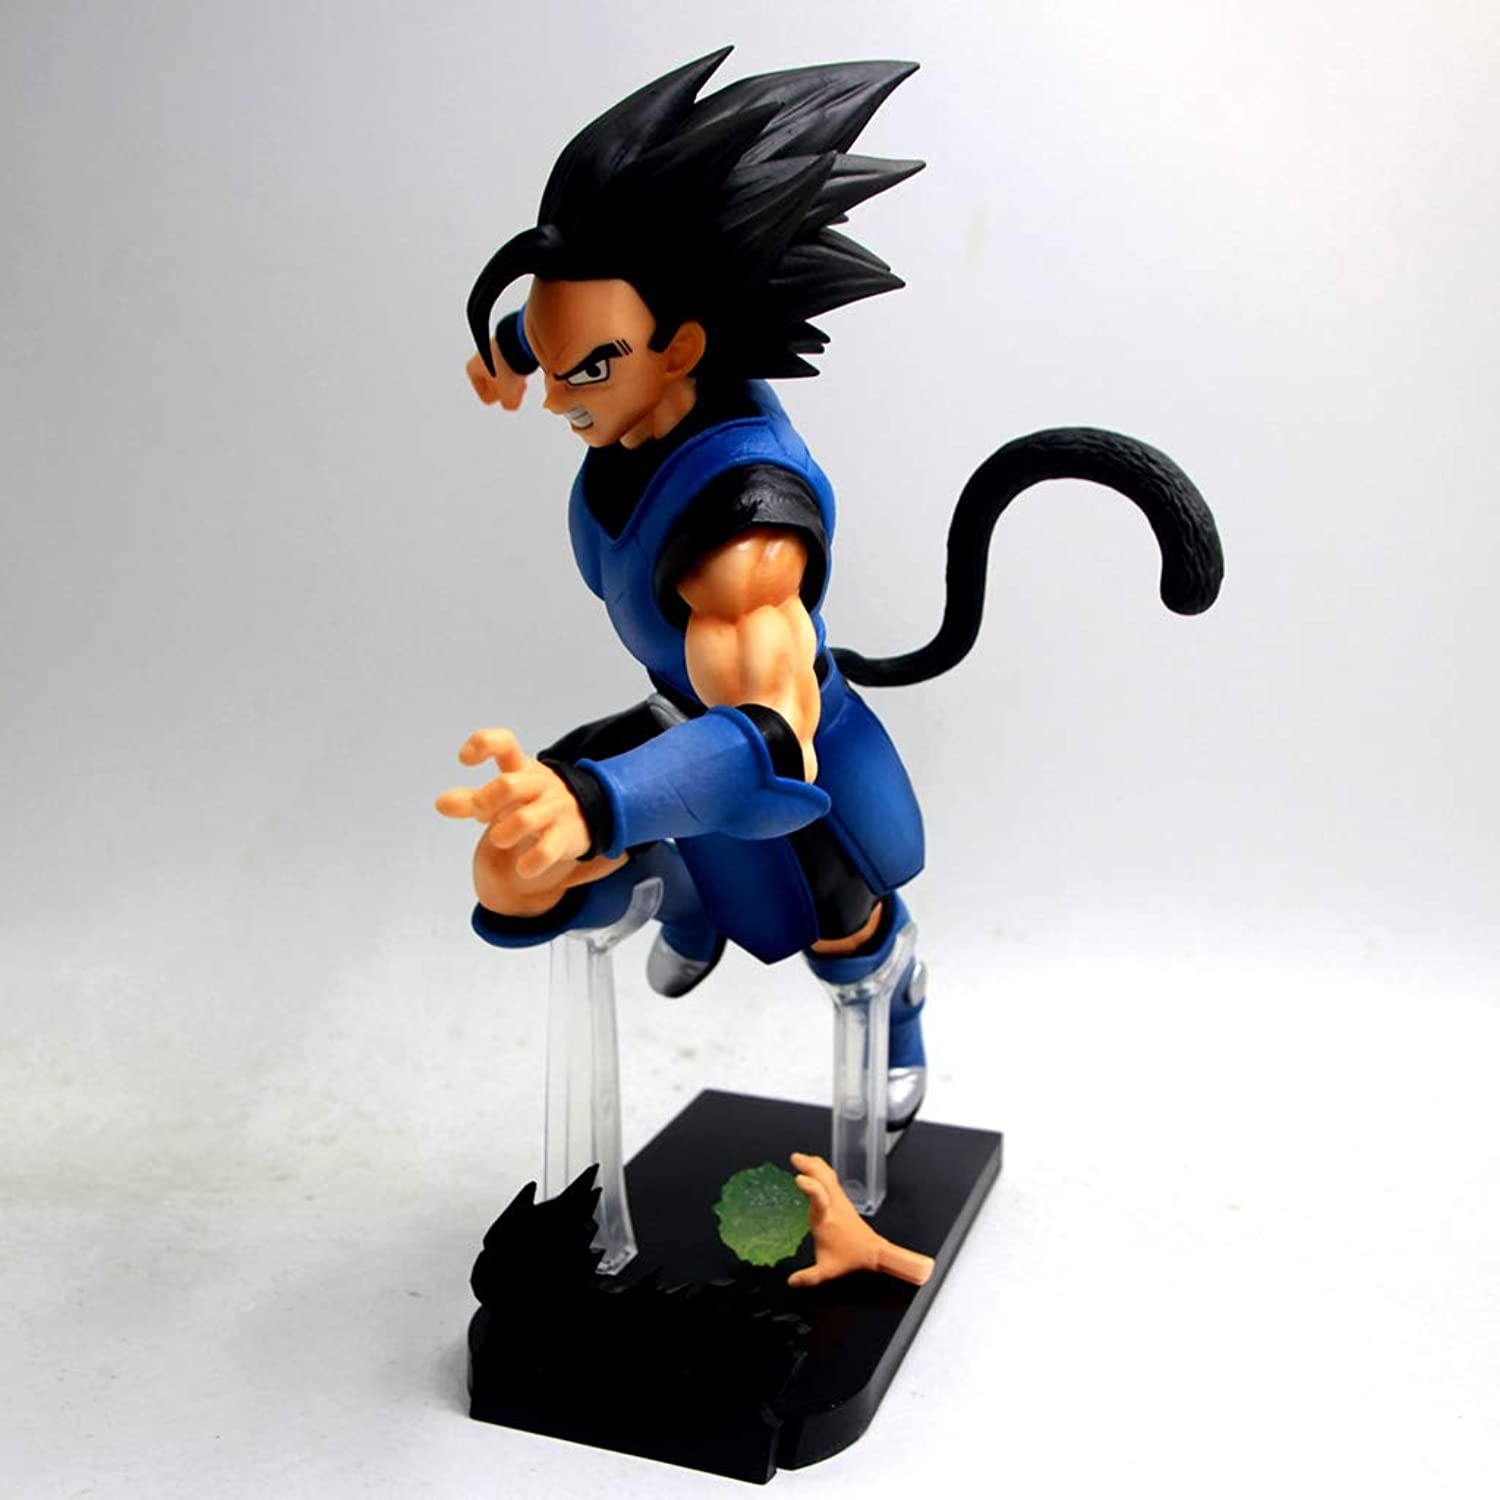 JXJJD Toy Statue Dragon Ball Toy Statue Saiyan Toy Model Cartoon Character Gift Collection Vegeta 9.8in